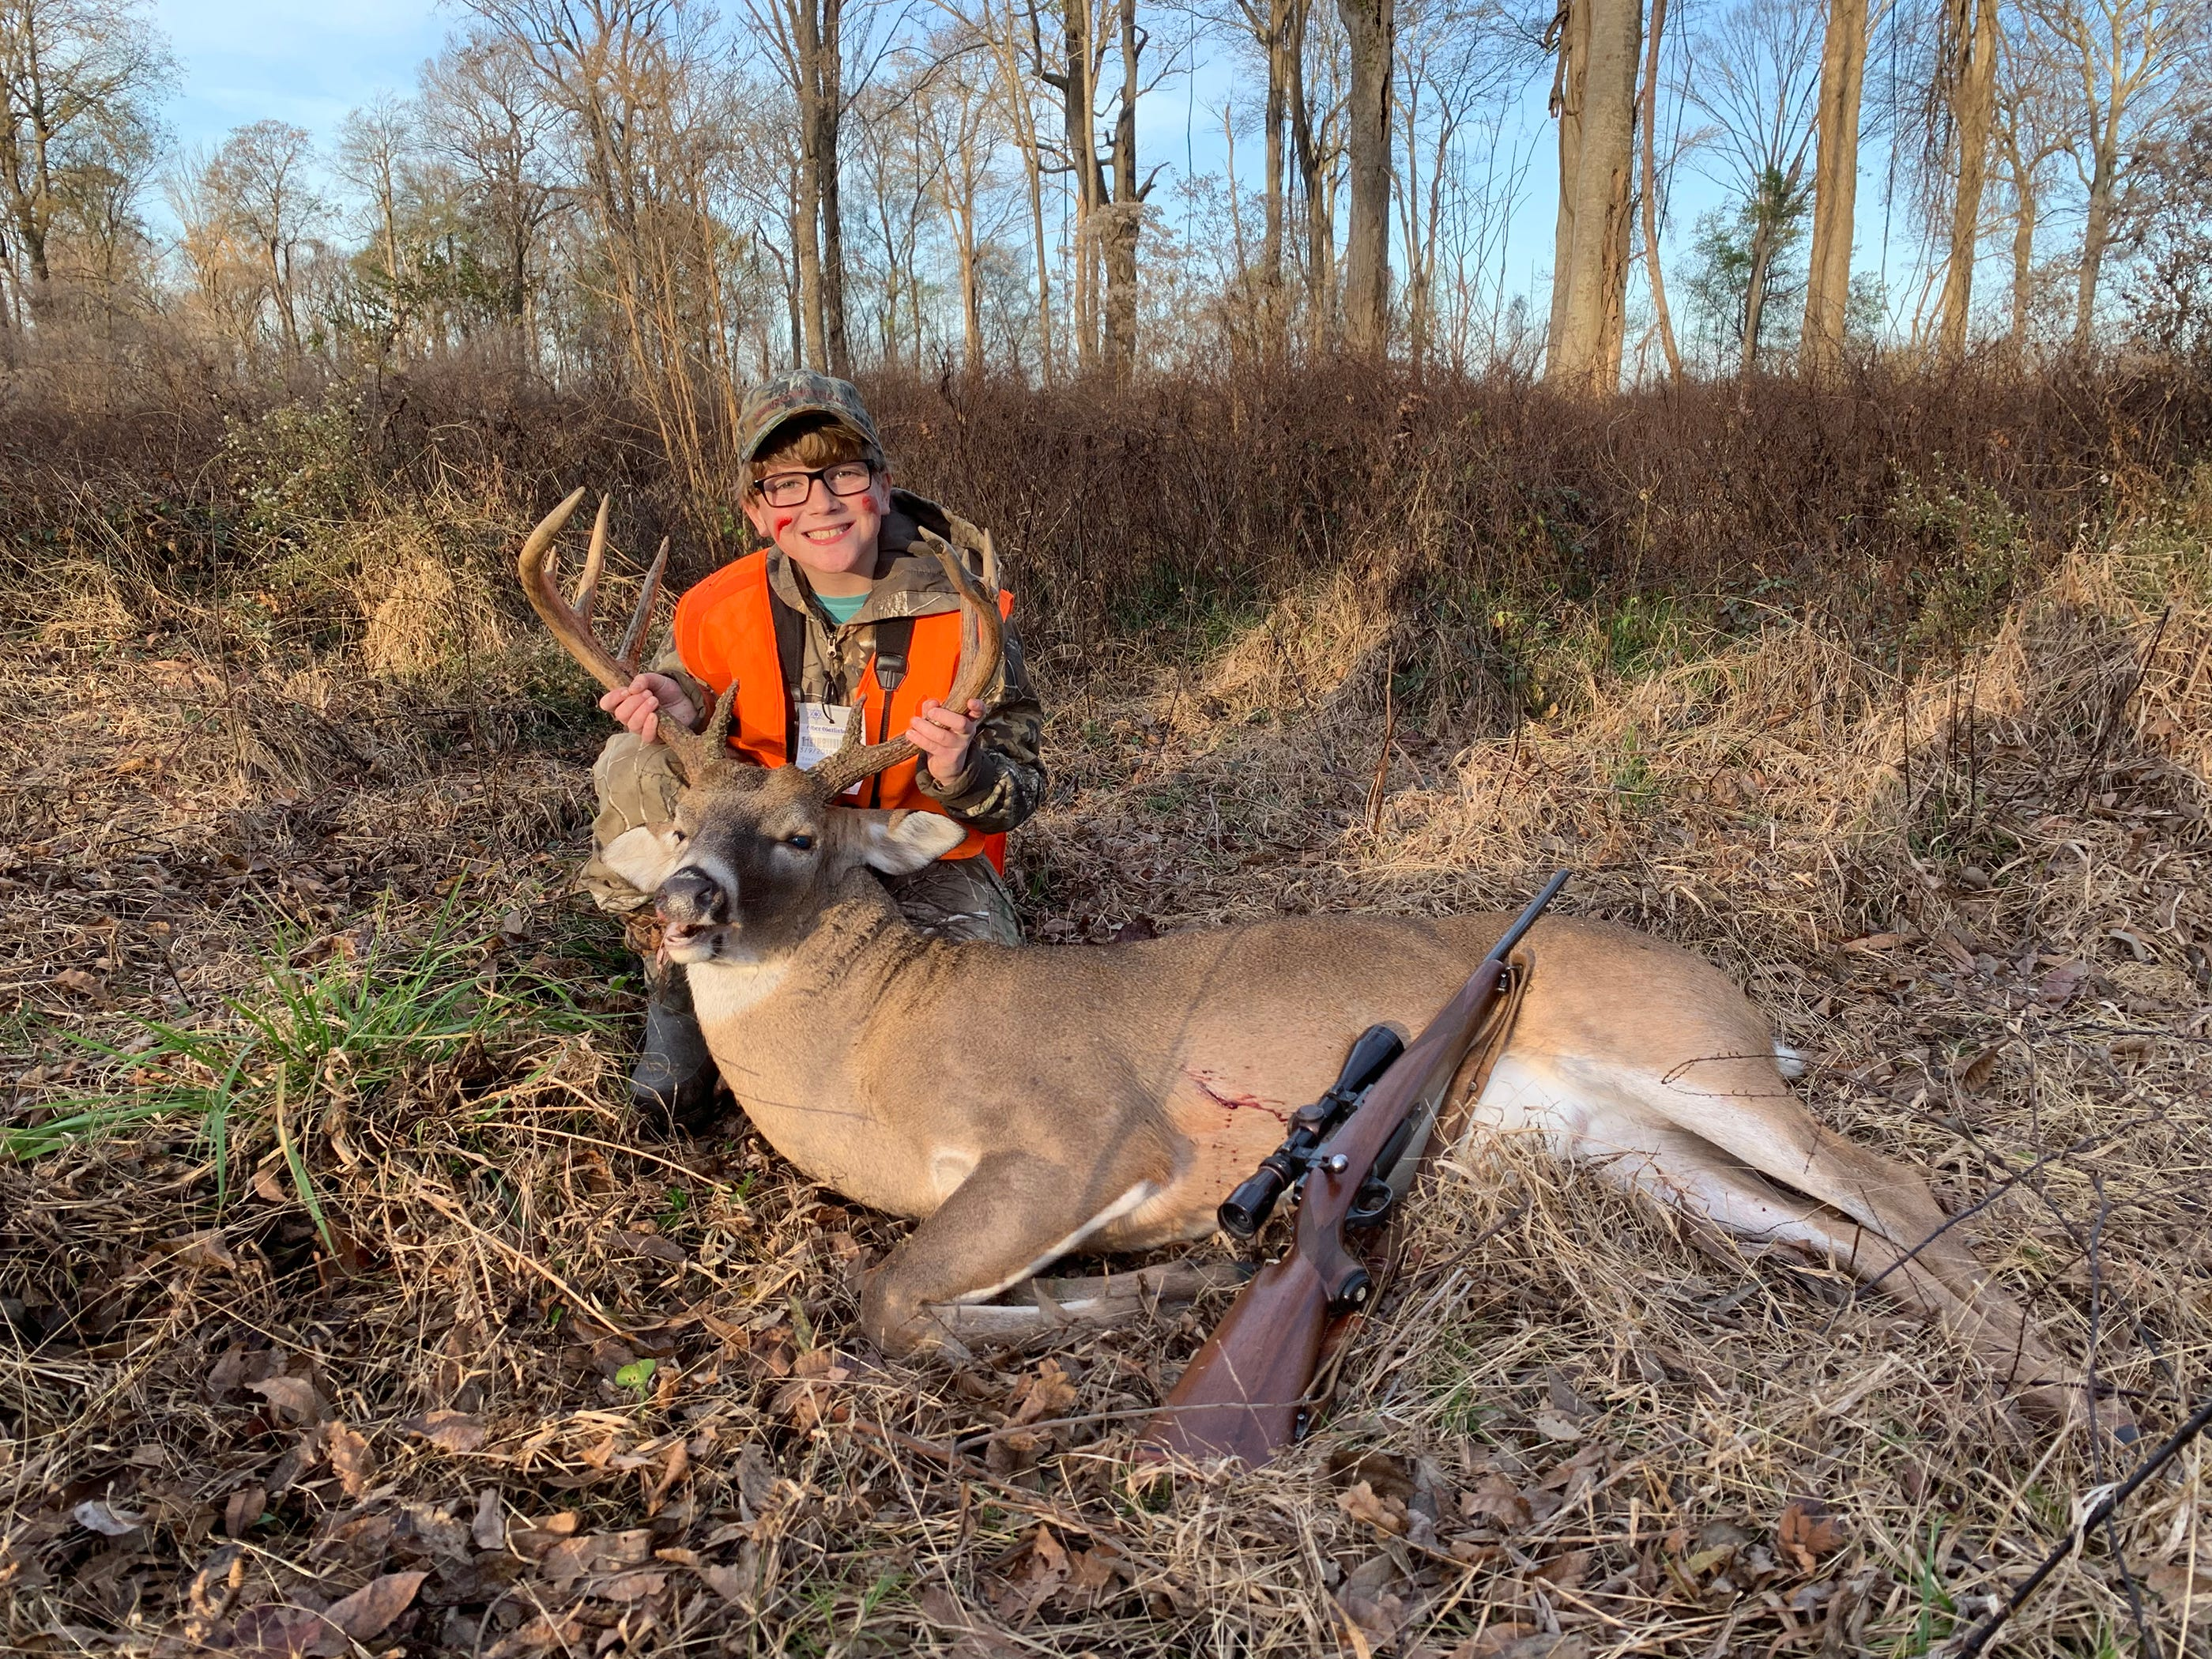 William Holladay, 10, of Madison, harvested this 9-point near Rosedale. A grunt call pulled the buck in for a perfect shot.